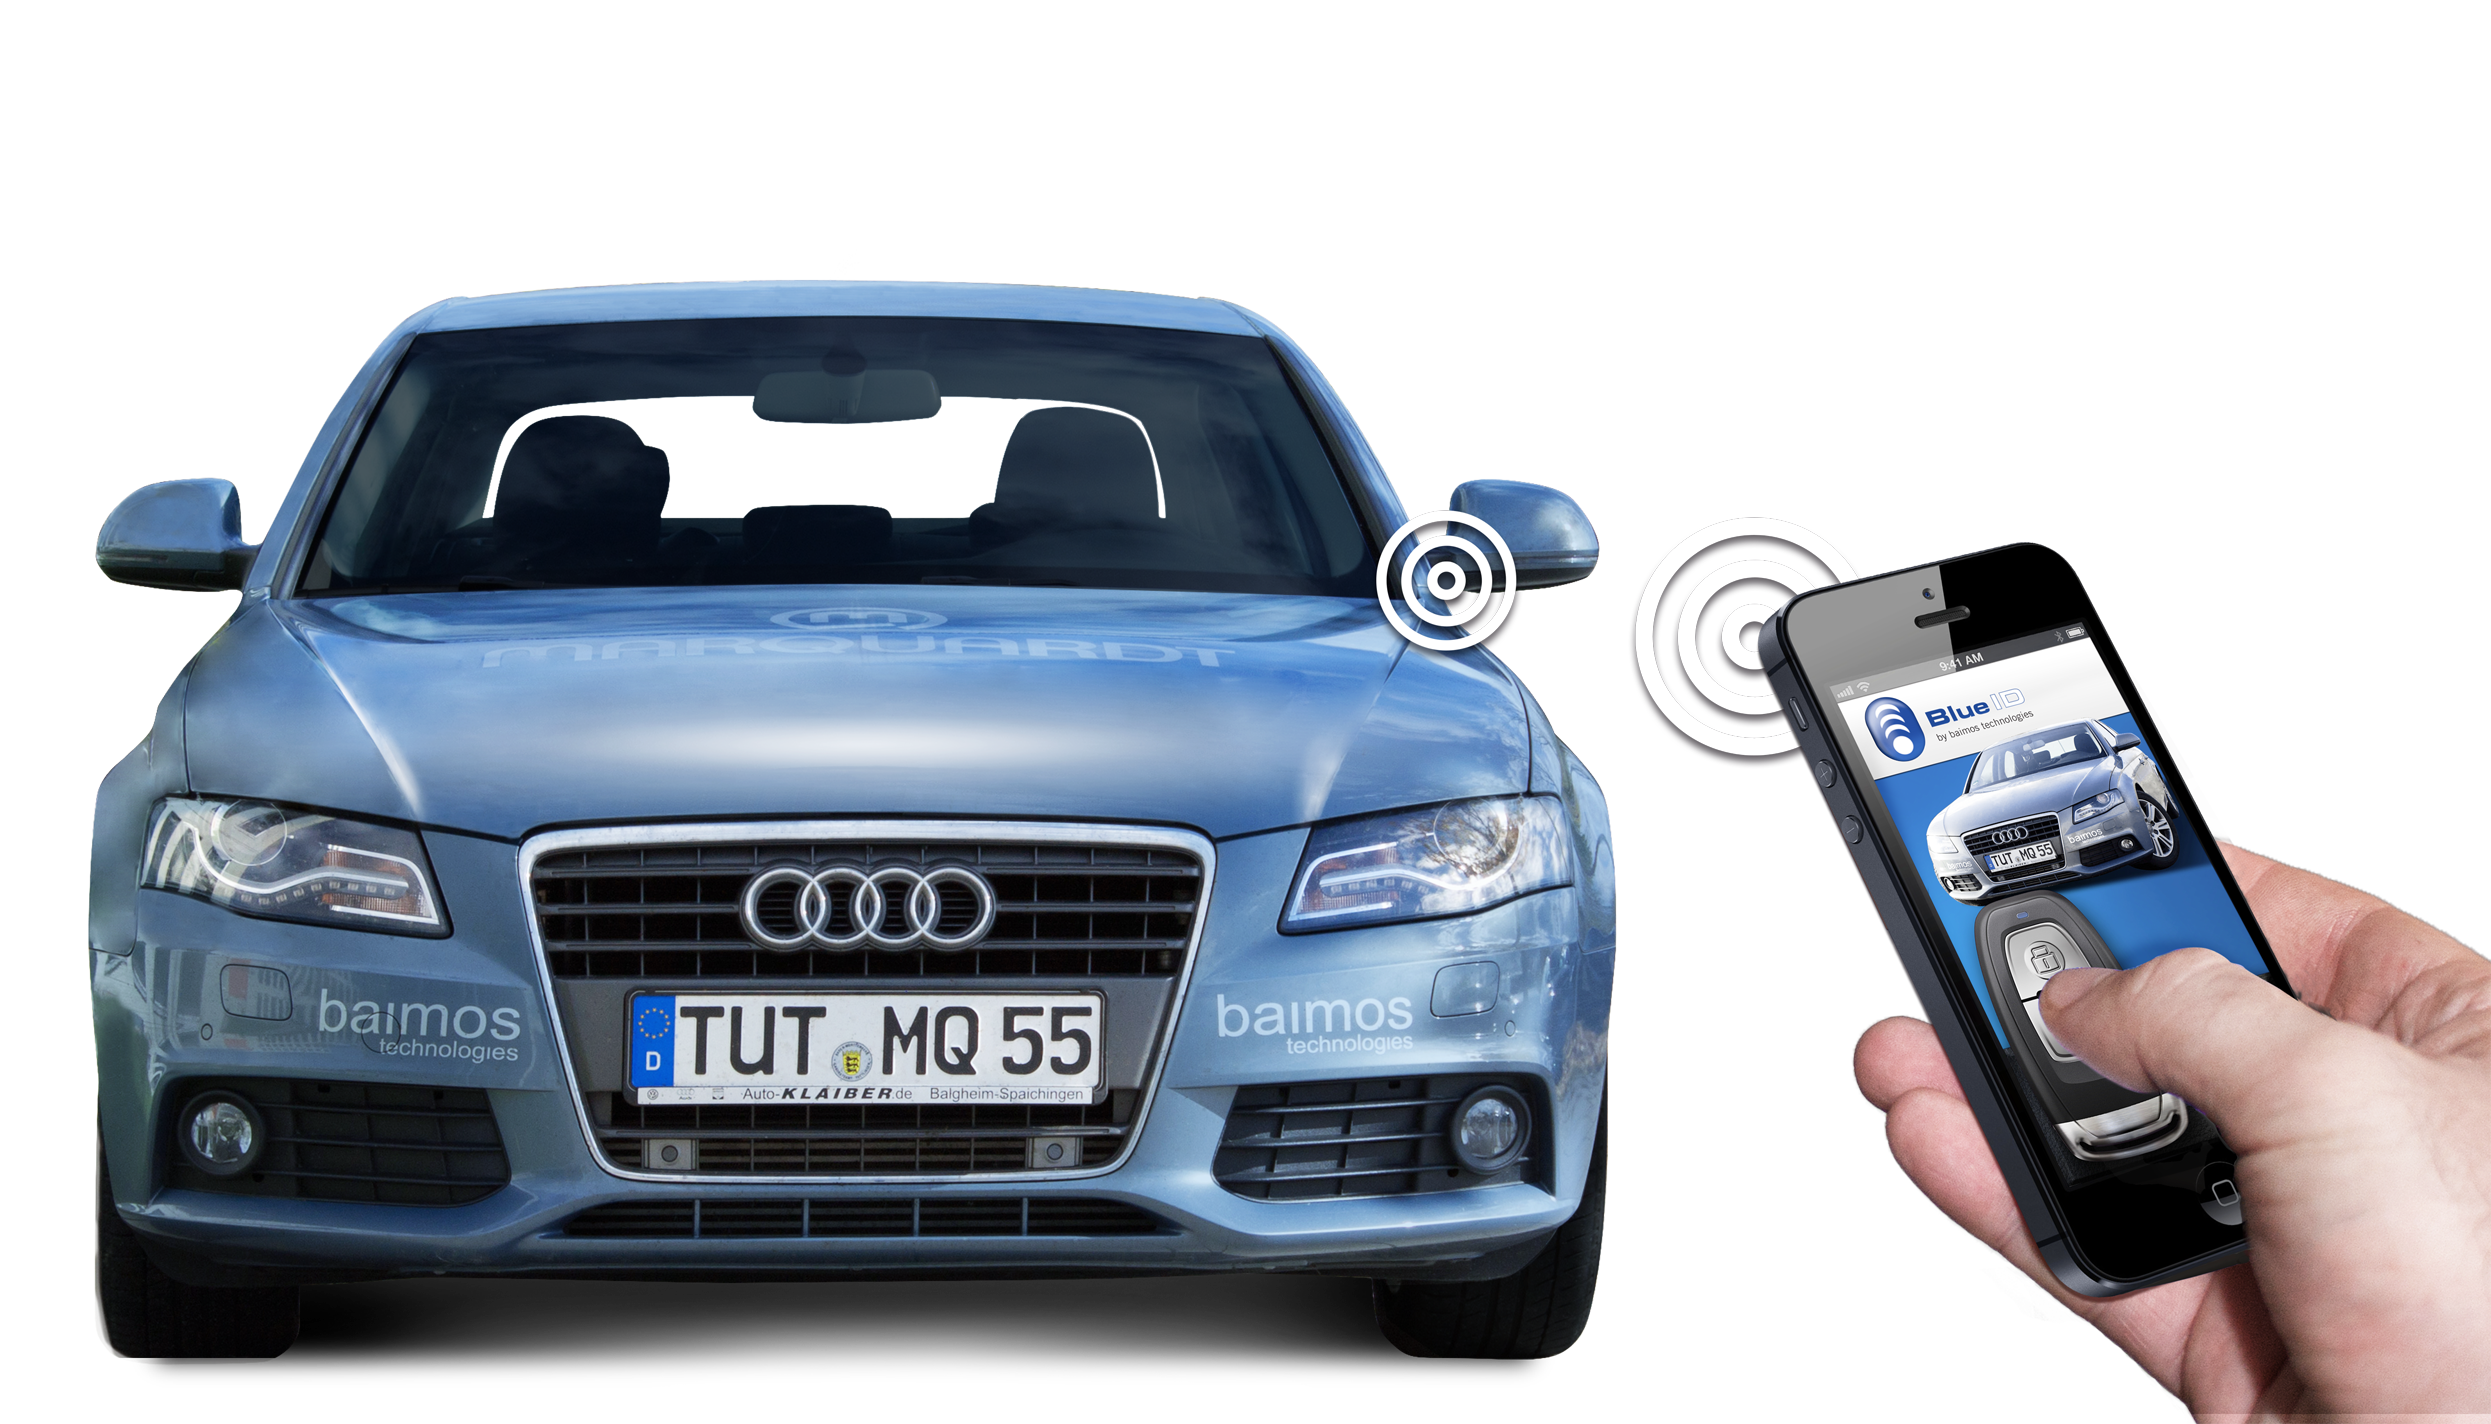 Open And Start Your Car With An Android Or Ios Smartphone